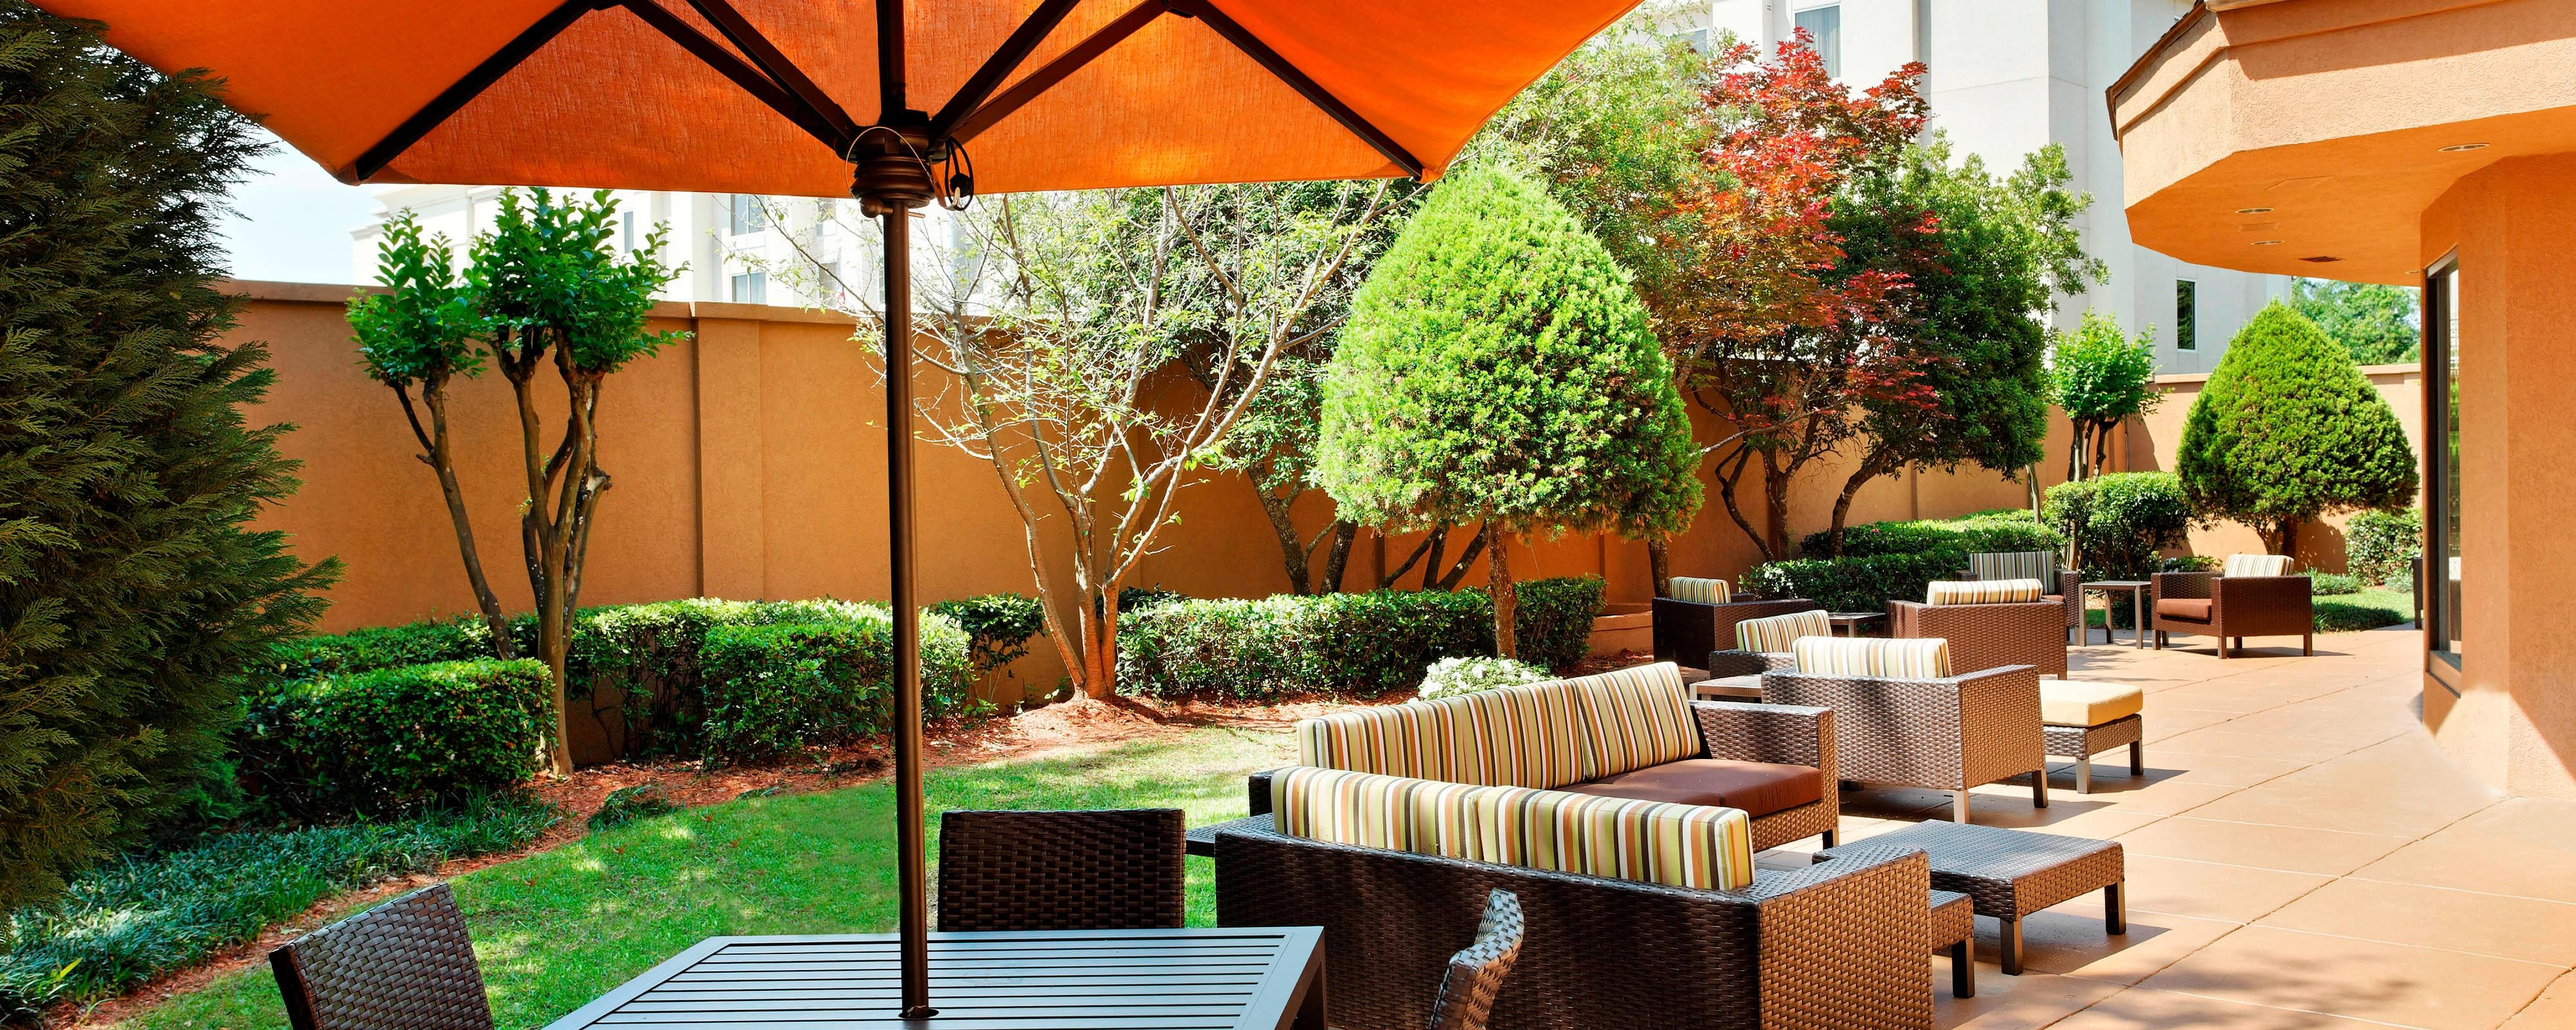 patio del Courtyard Mobile